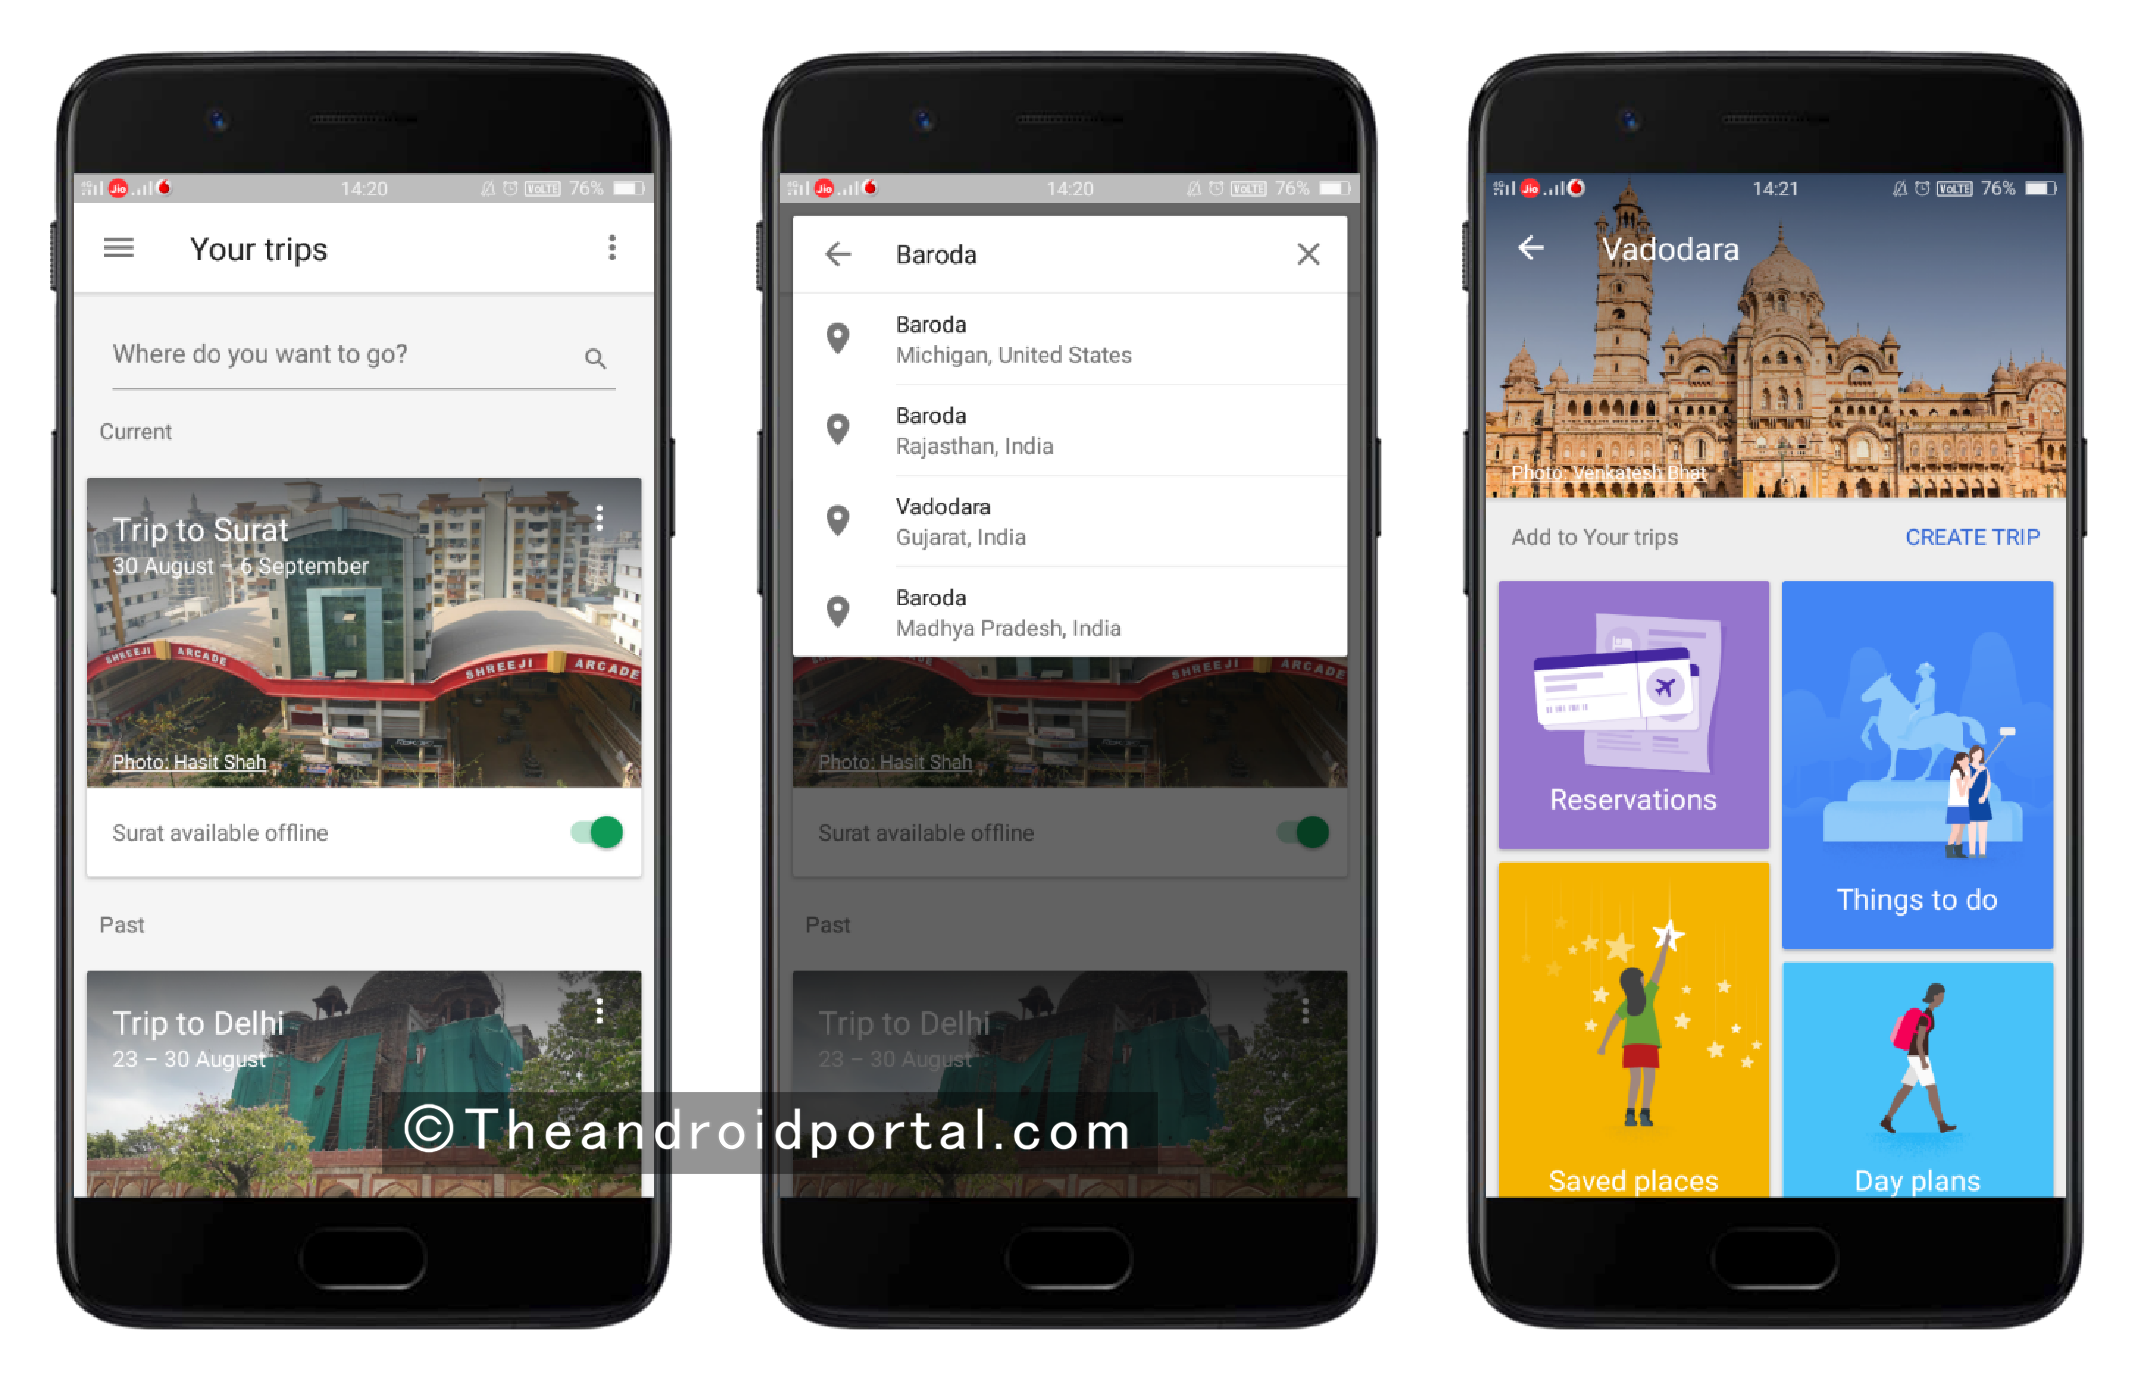 Search Destination - theandroidportal.com